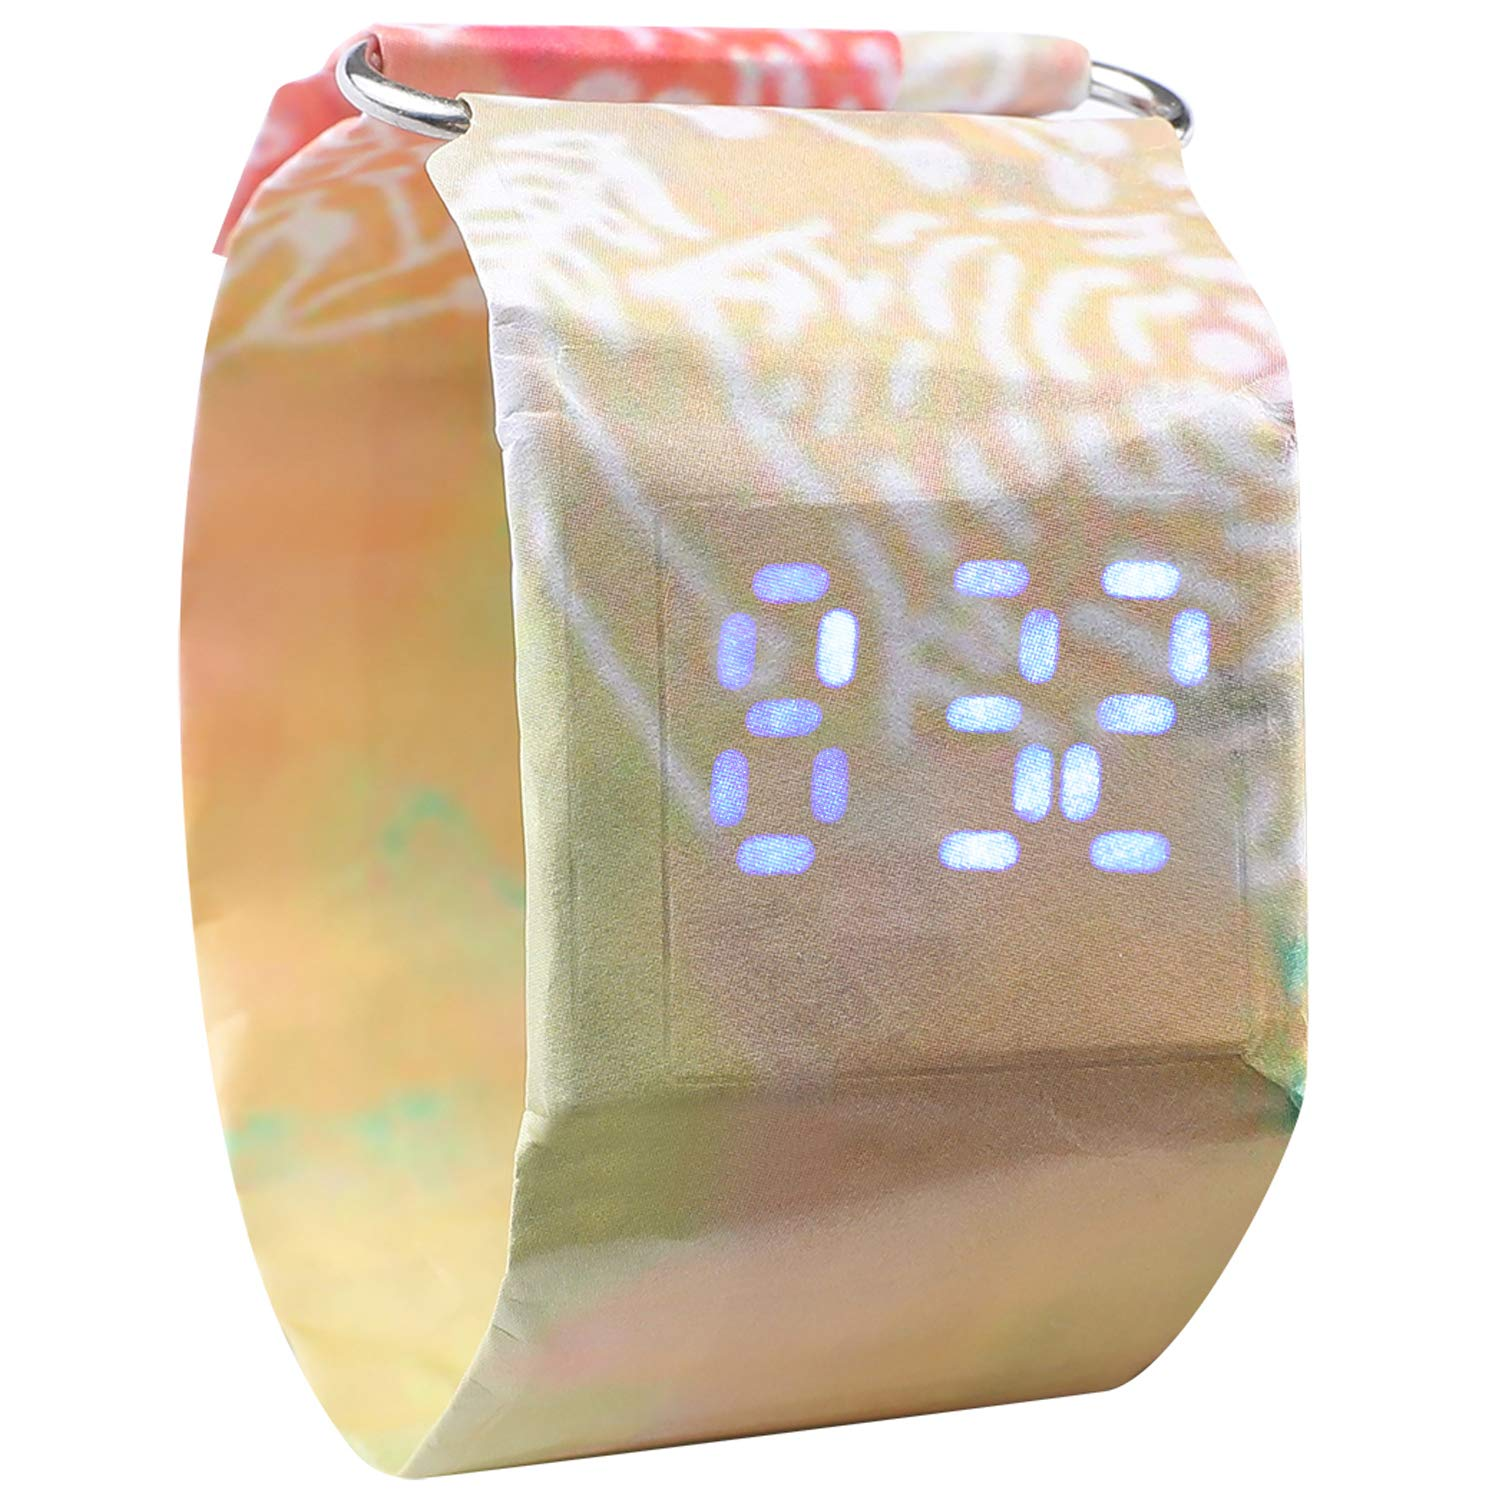 Paper Watch, Waterproof Colorful LED Handmade Digital Wrist Watch Light Durable with Magnetic Gift for Men,Women,Girls,Boys,Students